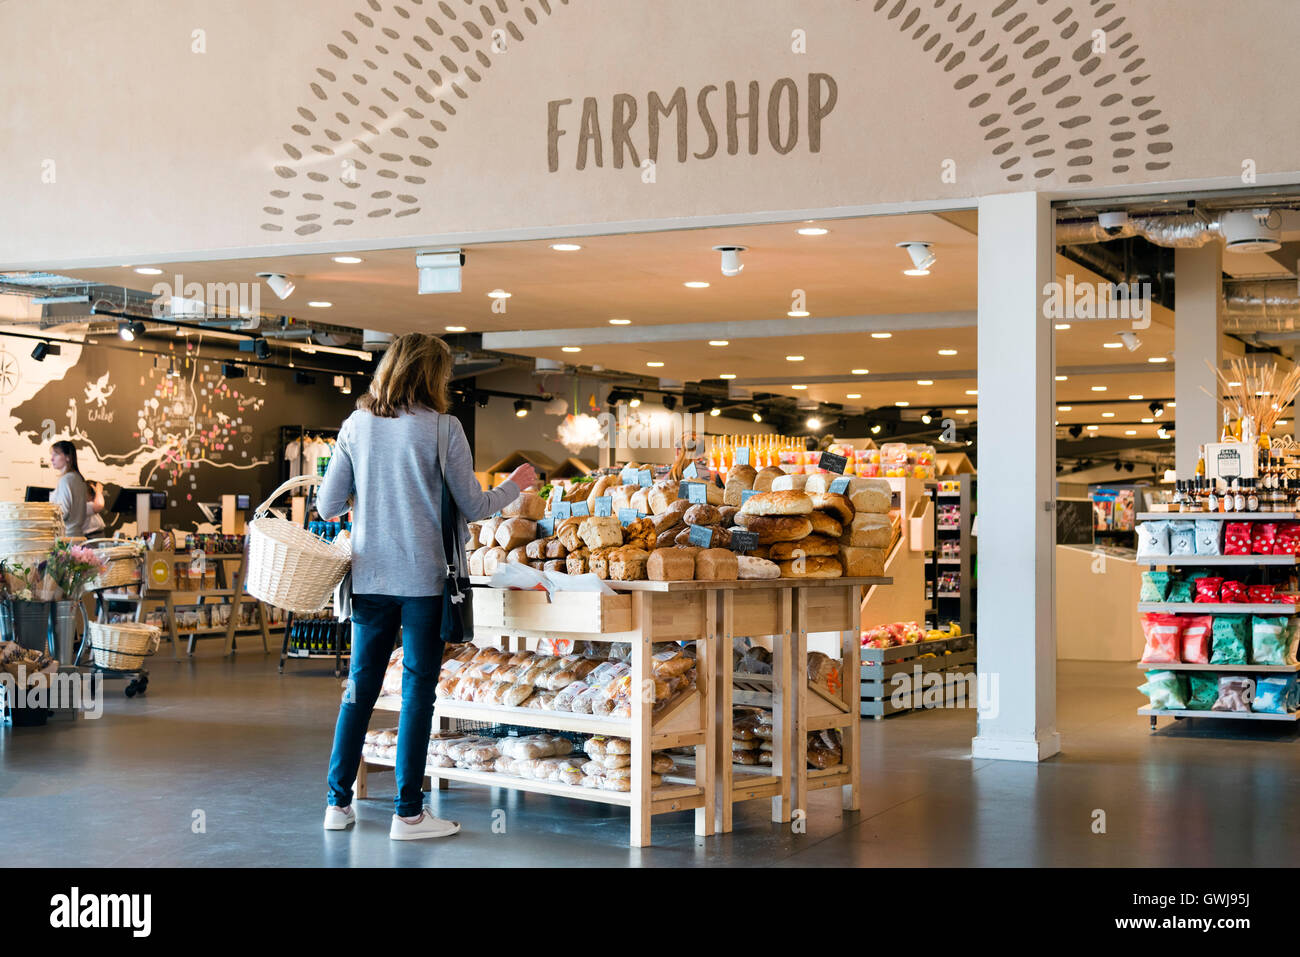 Farm shop at motorway service station, on the M5 northbound junction 12 to 11a, UK. - Stock Image